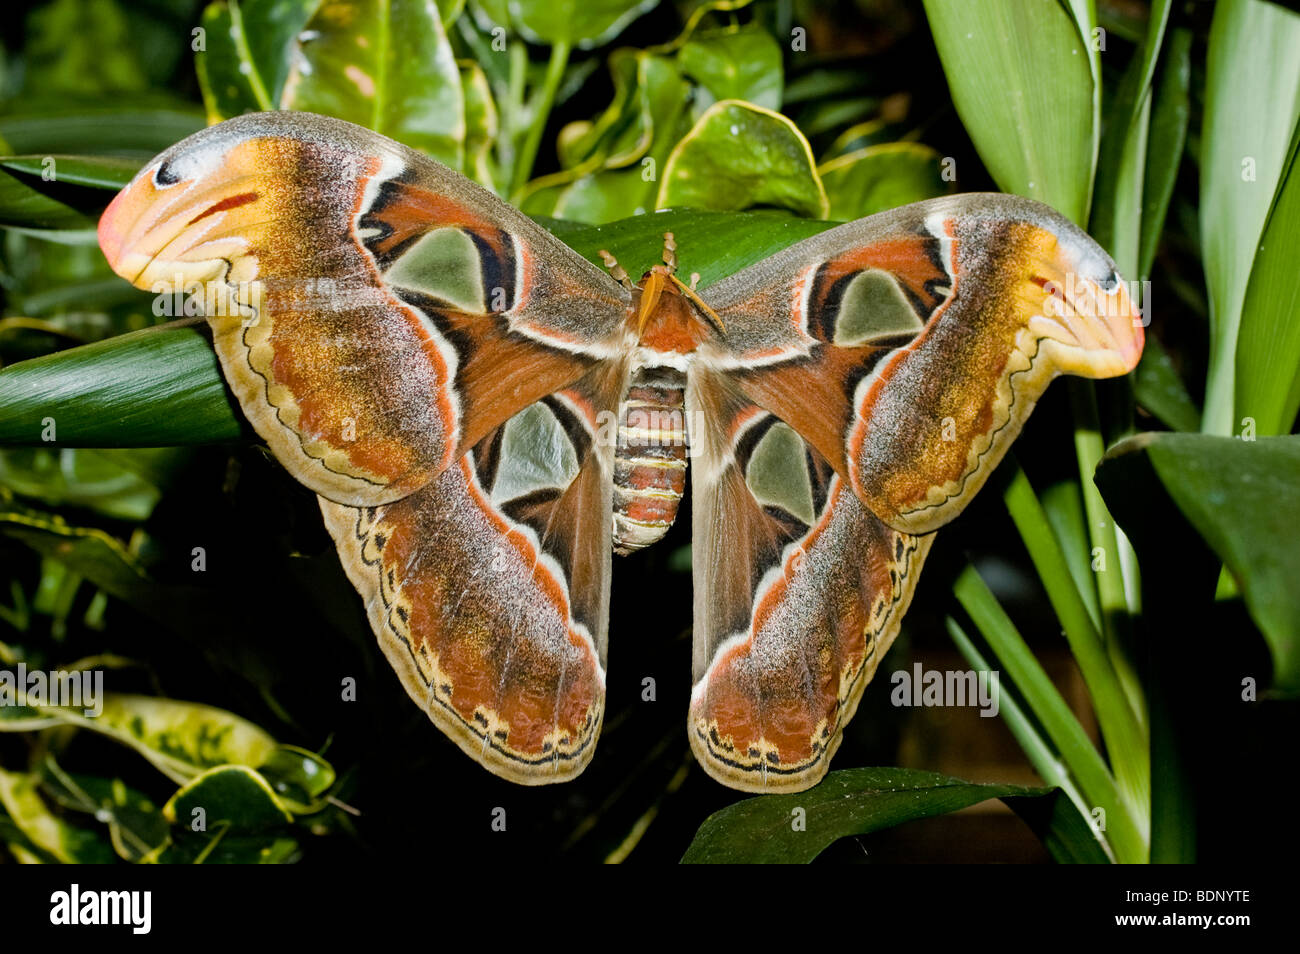 Atlas moth - generally considered the largest moth in the world. - Stock Image